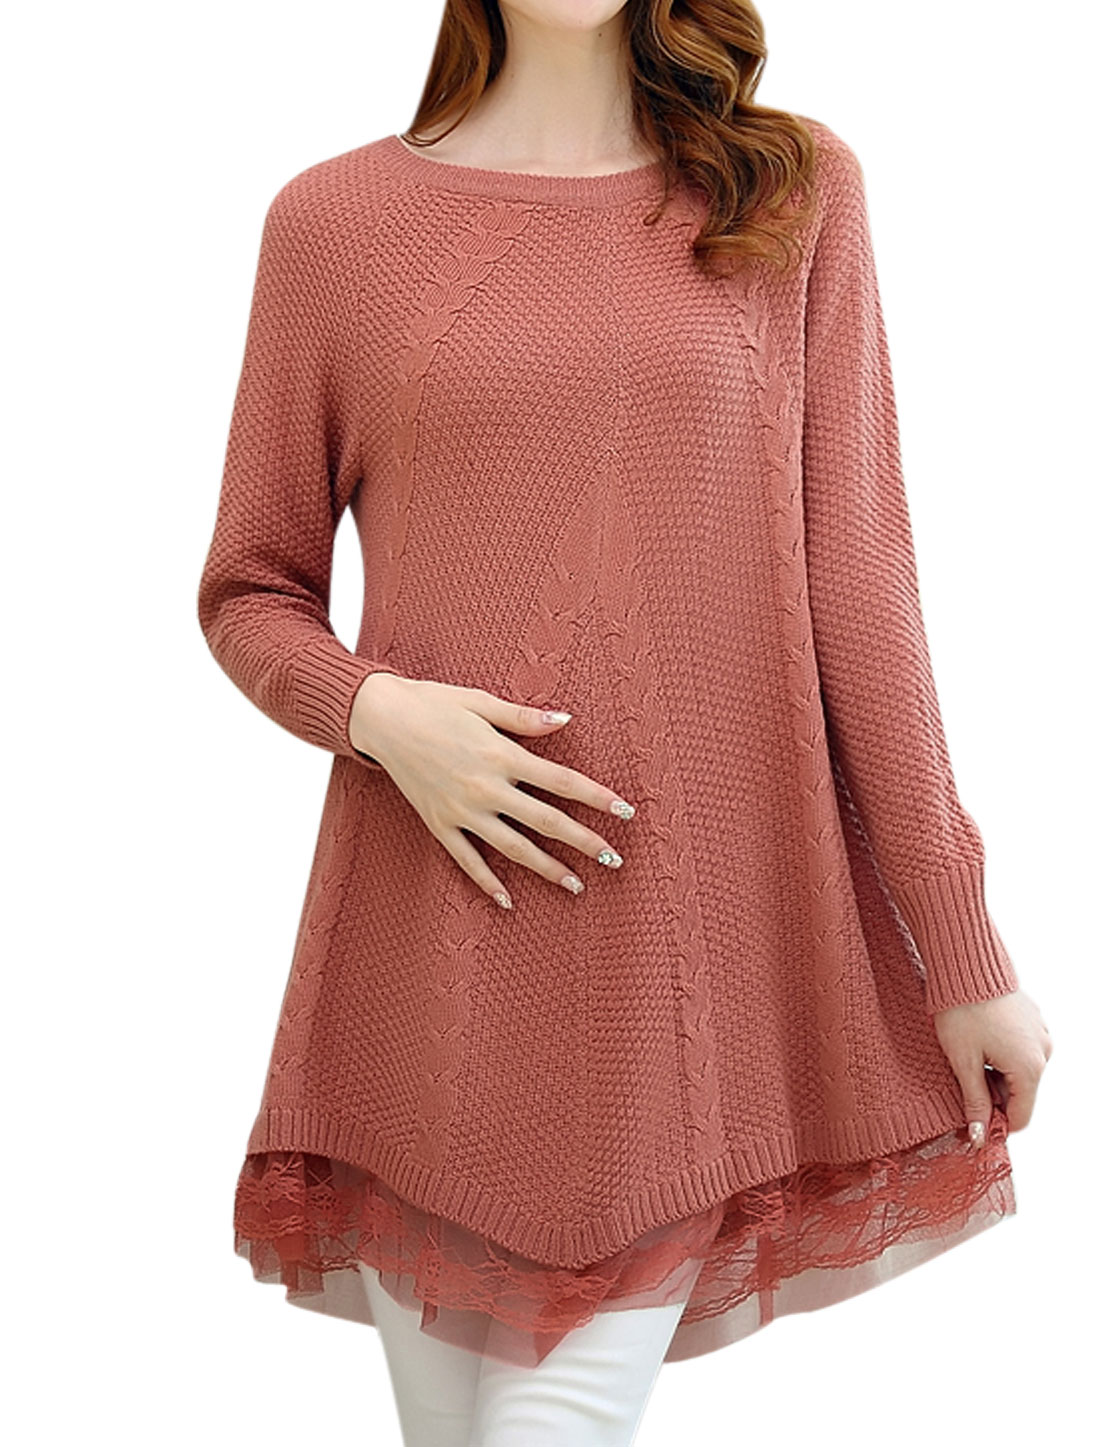 Pregnant Women Raglan Sleeve Slipover Casual Tunic Sweater Salmon M